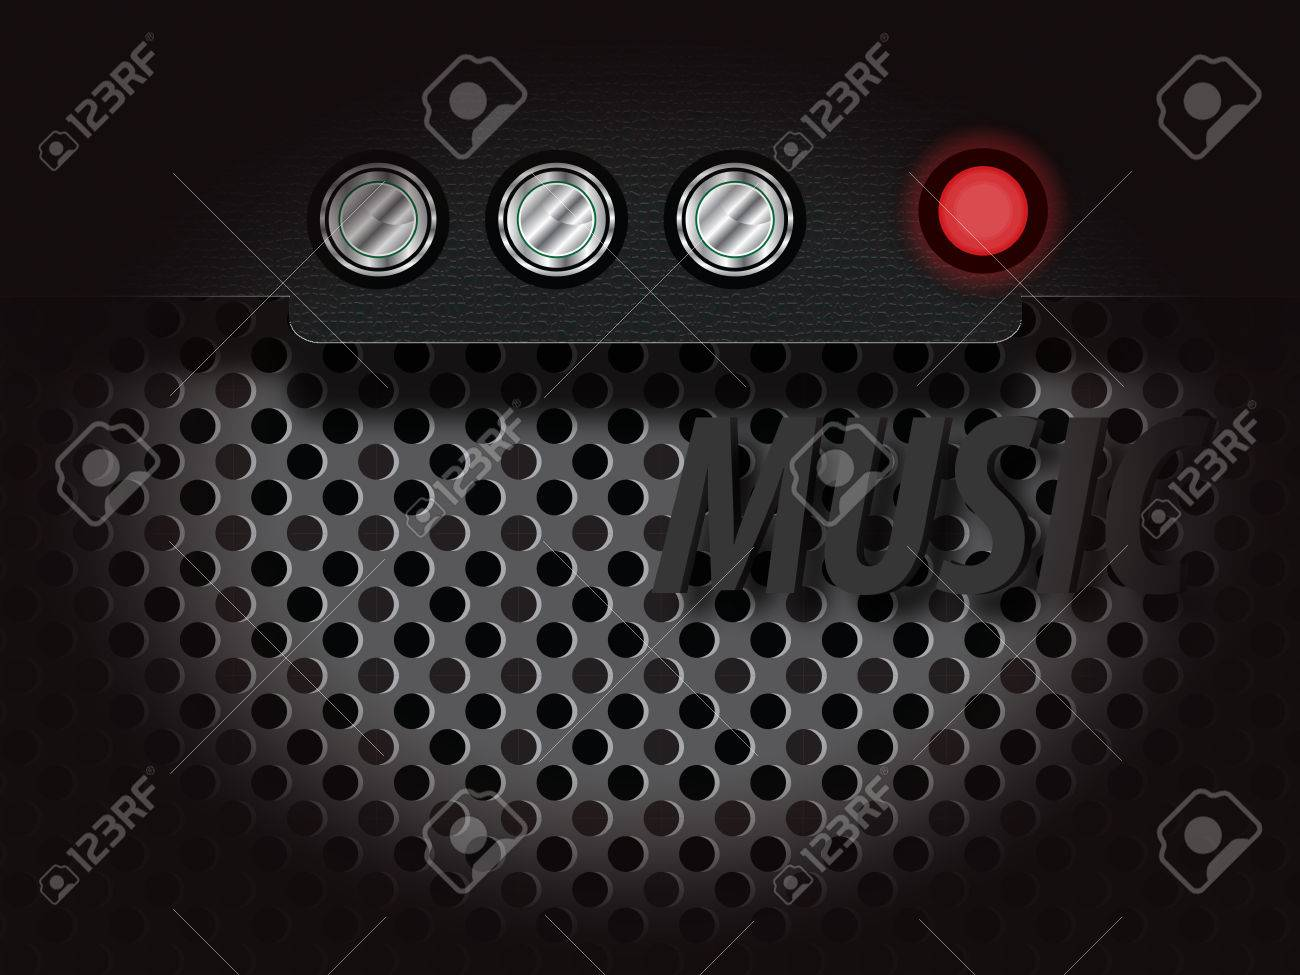 Amplifier With Audio Controls And The Red Indicator Light Gray Mesh For Music Backgrounds Stock